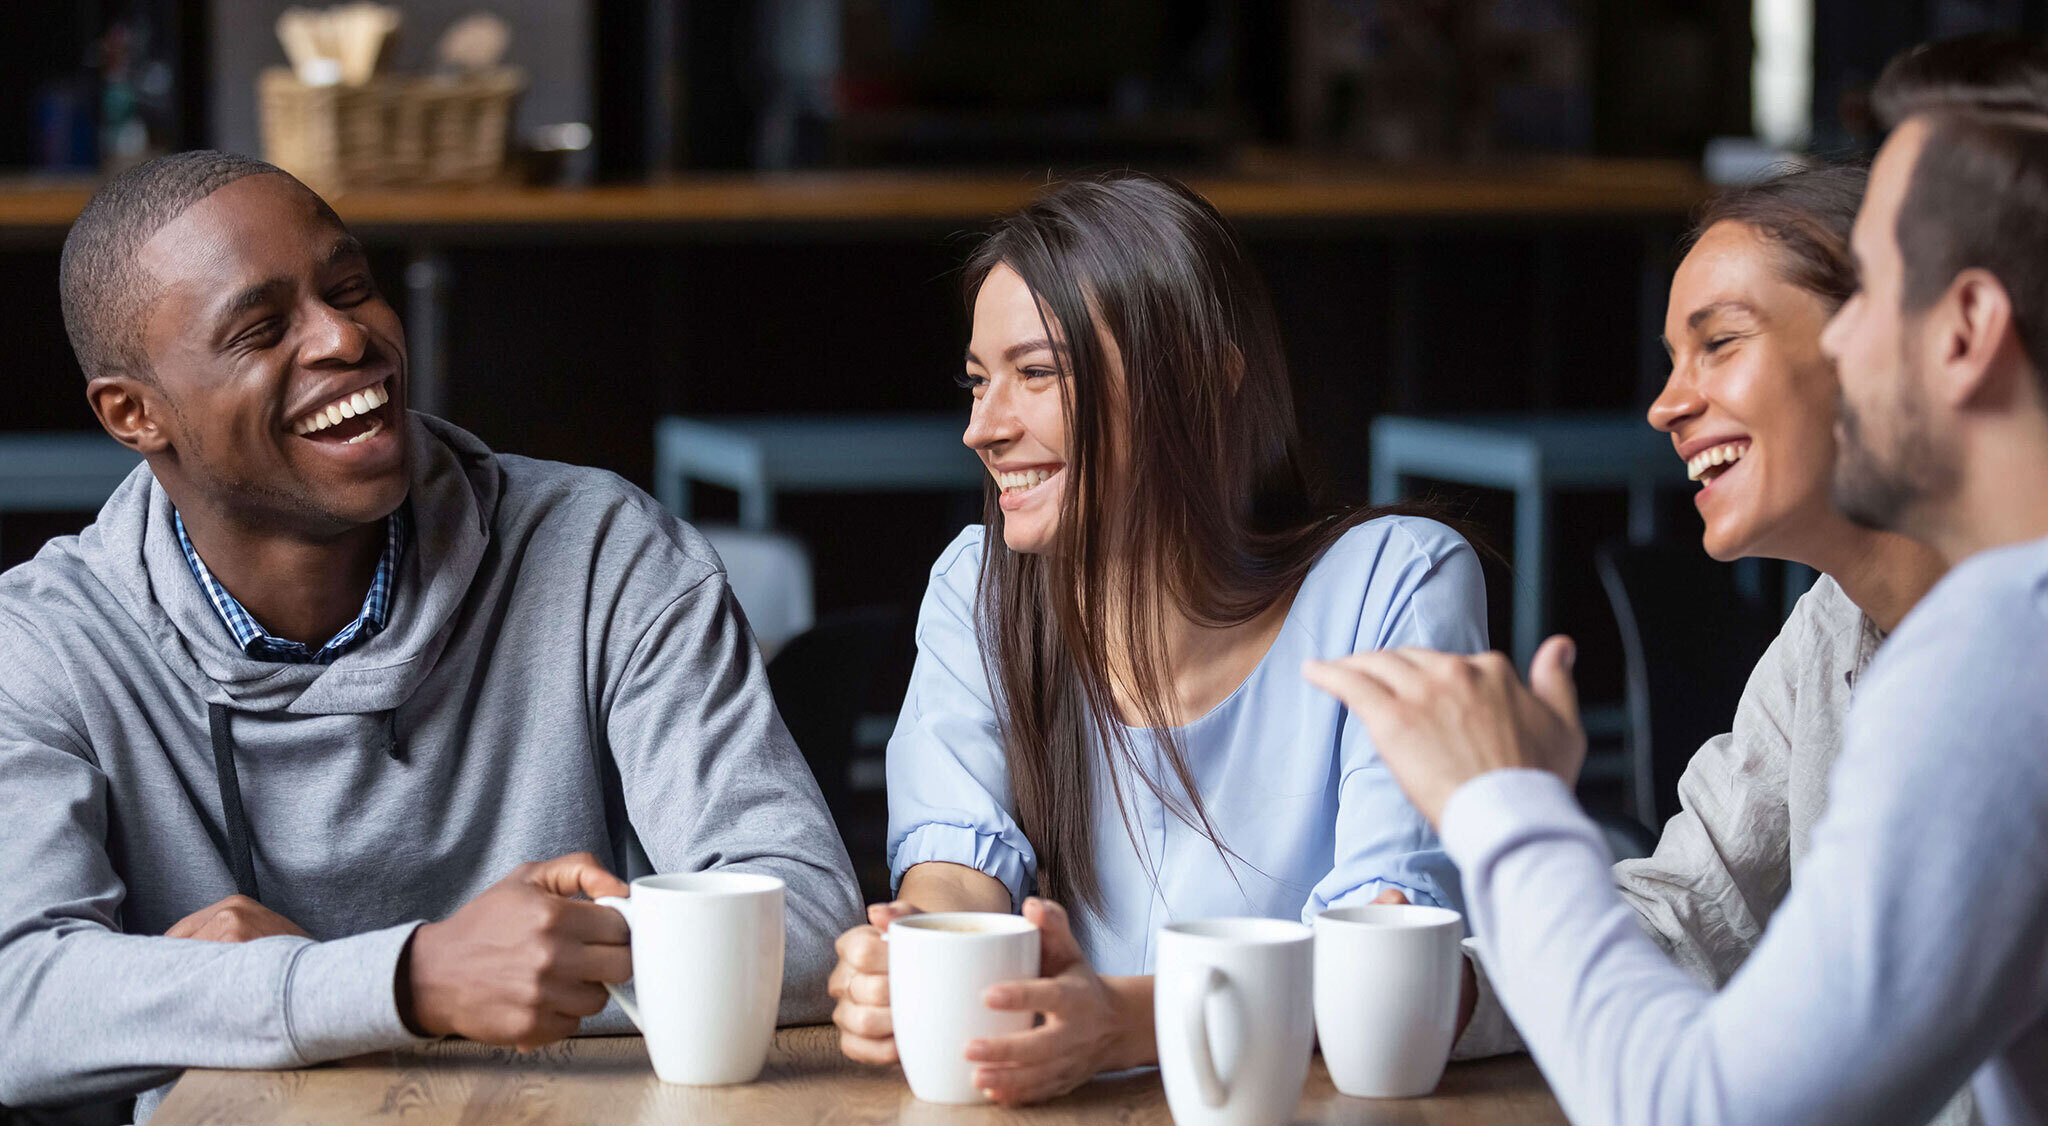 Young men and women laughing and talking over coffee